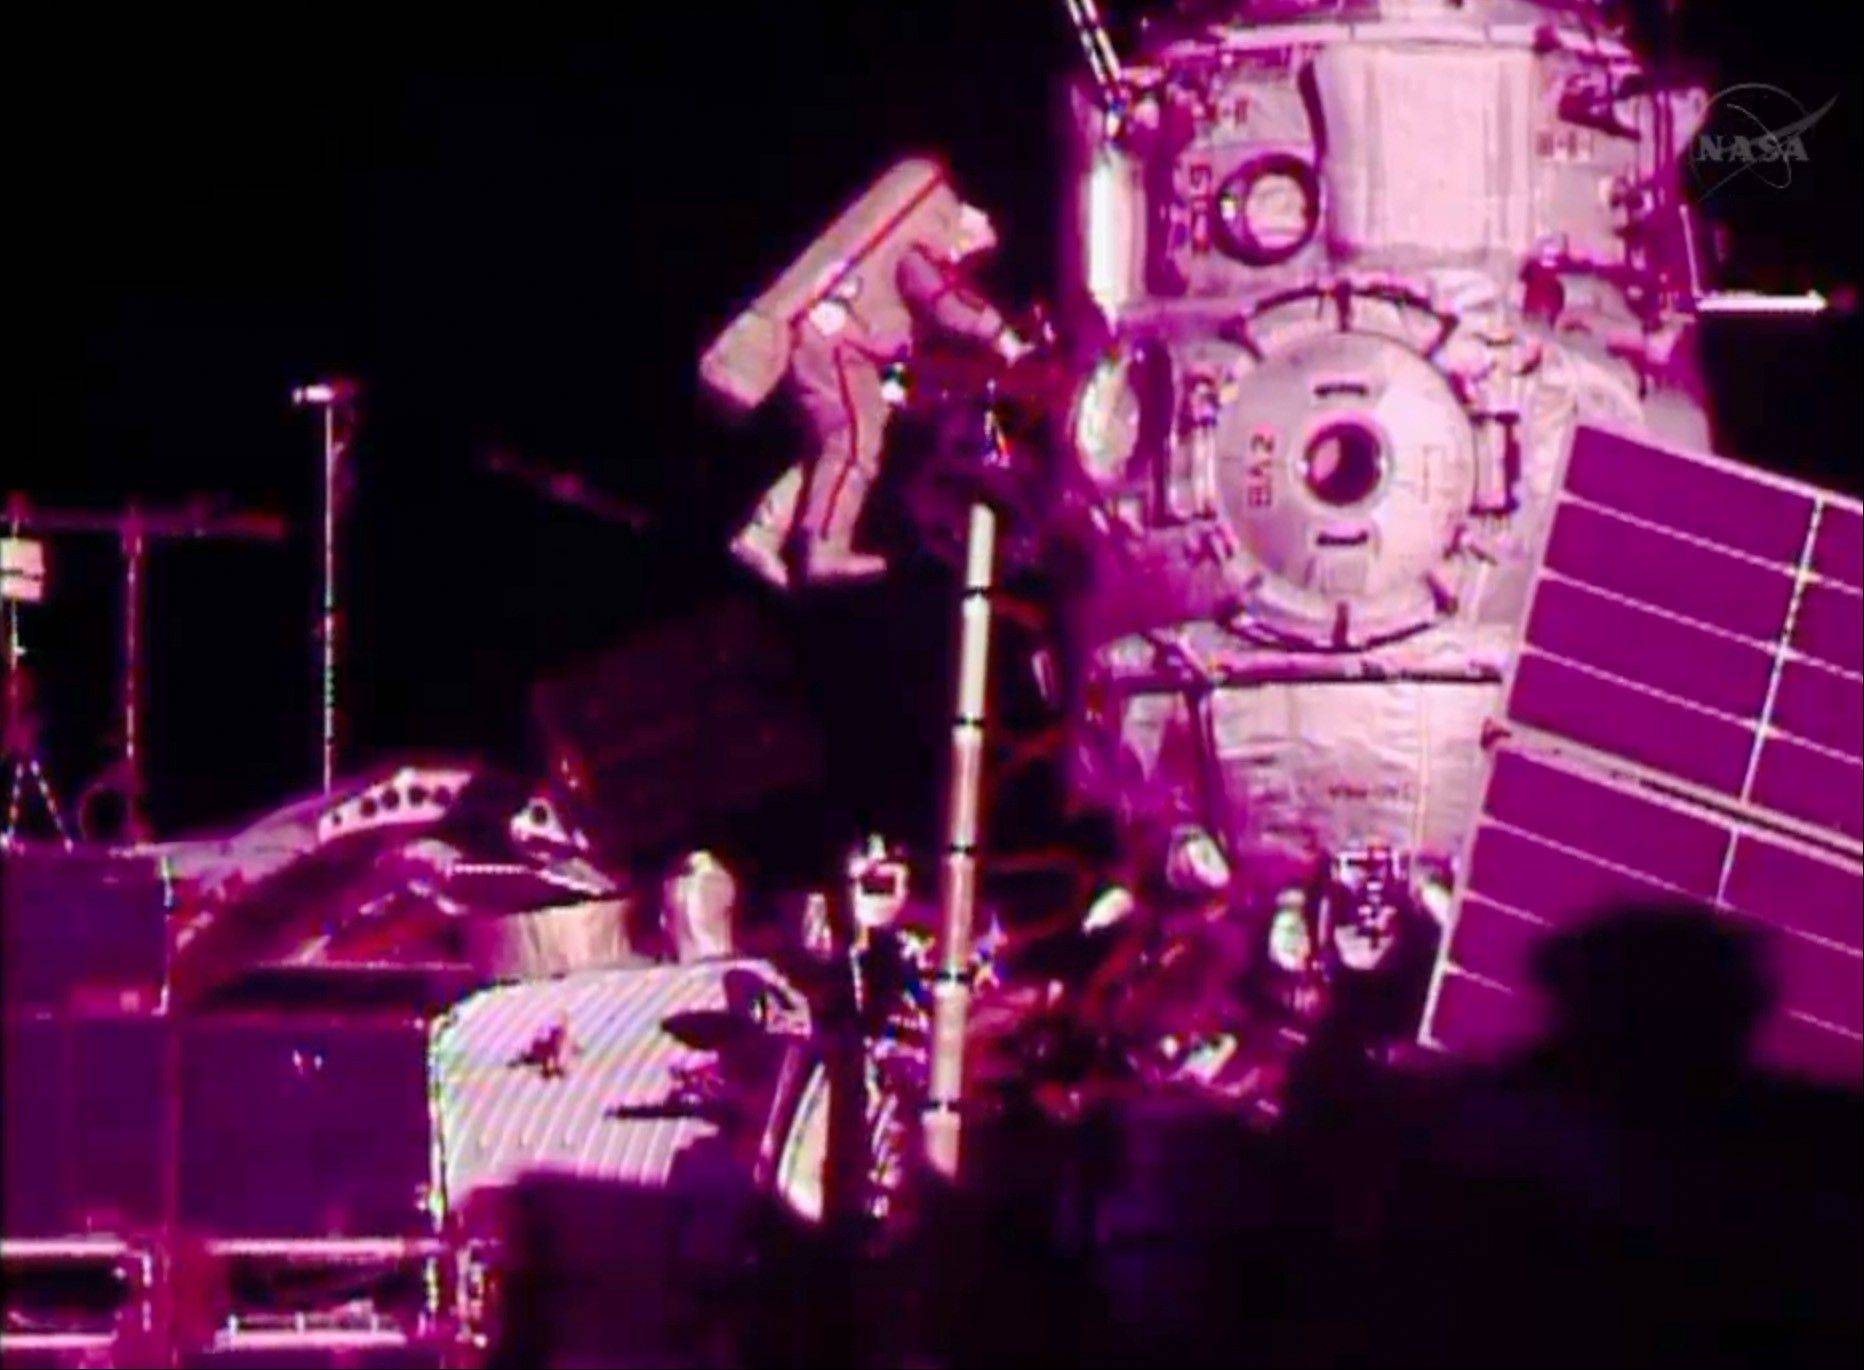 In this image from video made available by NASA, Russian cosmonaut Fyodor Yurchikhin participates in a spacewalk outside the International Space Station on Friday, Aug. 16, 2013. Yurchikhin and Aleksandr Misurkin are to install cabling for a new lab due to arrive at the station in a few months.